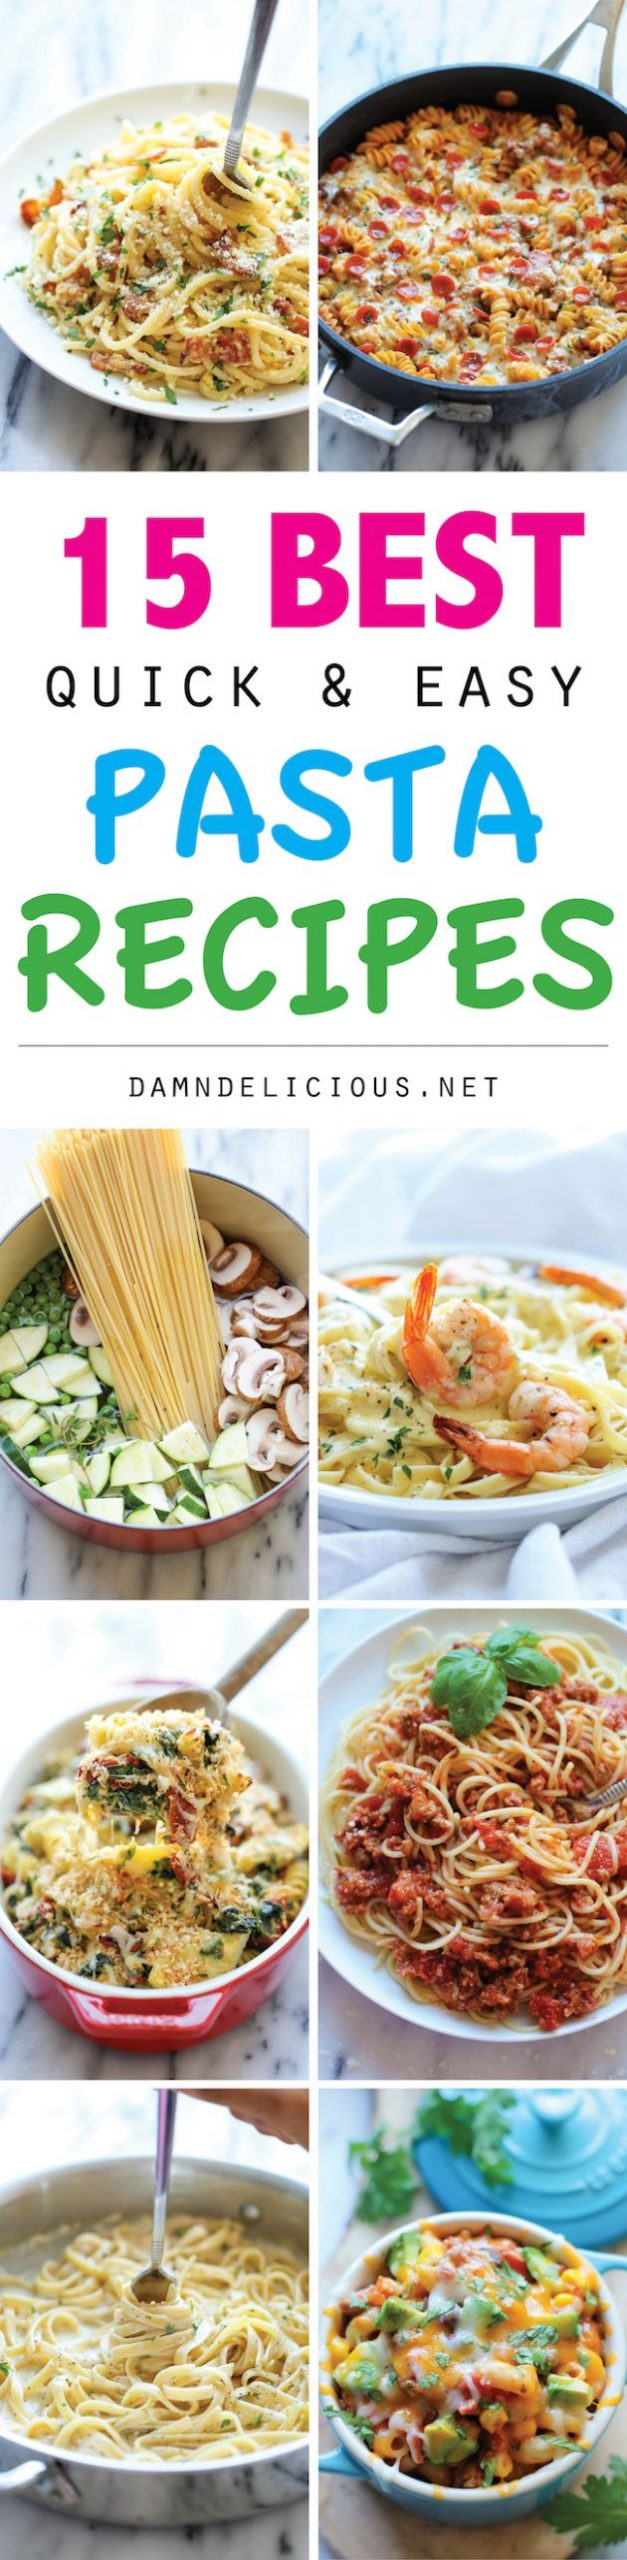 11 Best Quick and Easy Pasta Recipes - Damn Delicious - Pasta Recipes Quick